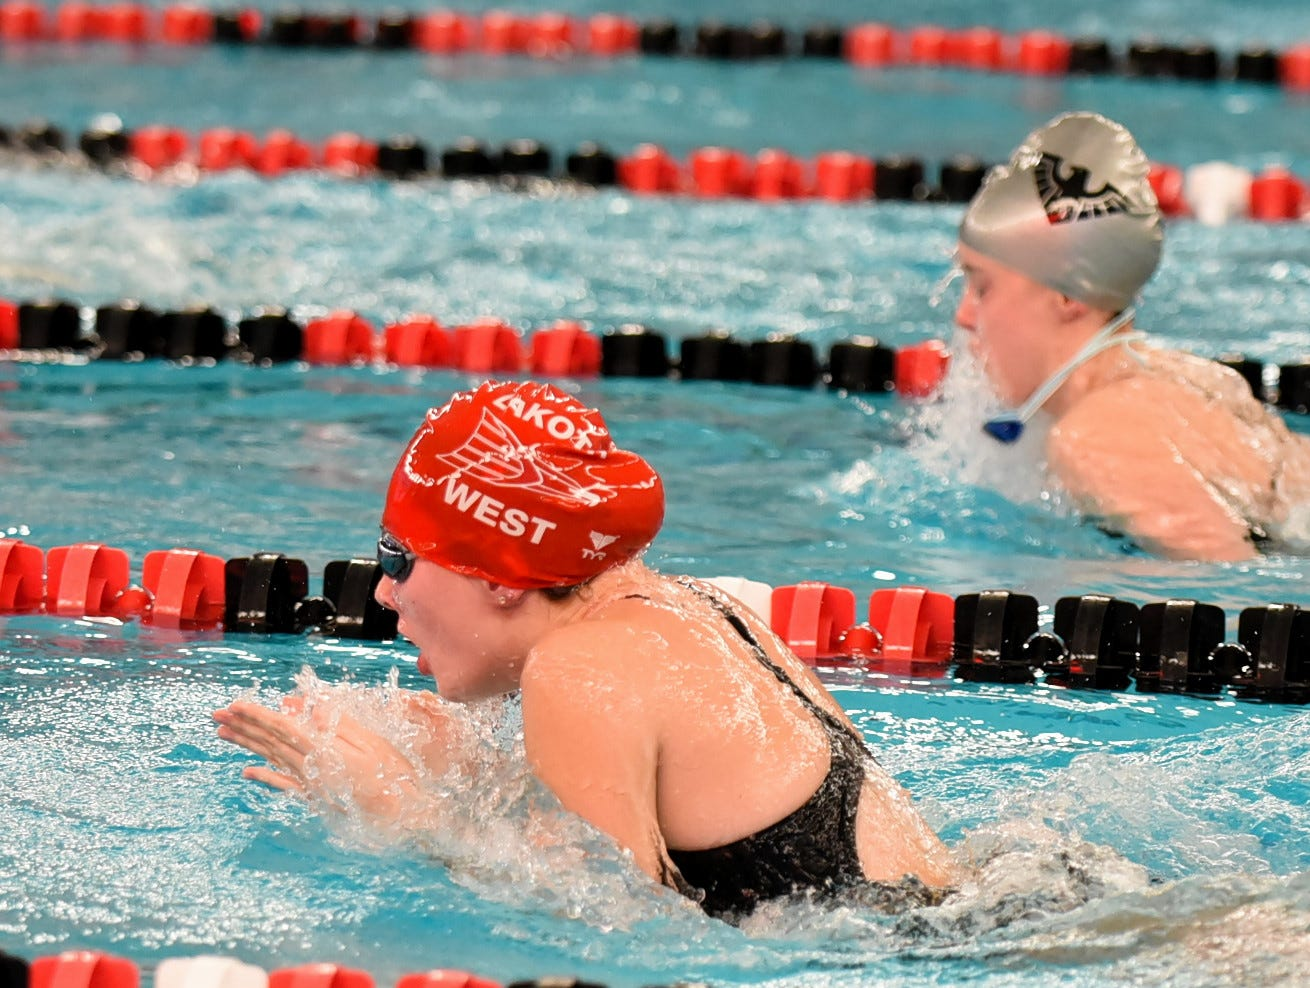 Corrine Johnston swims for Lakota West in the girls 400 medley at the Southwest Ohio Swimming and Diving Classic, January 19, 2019.